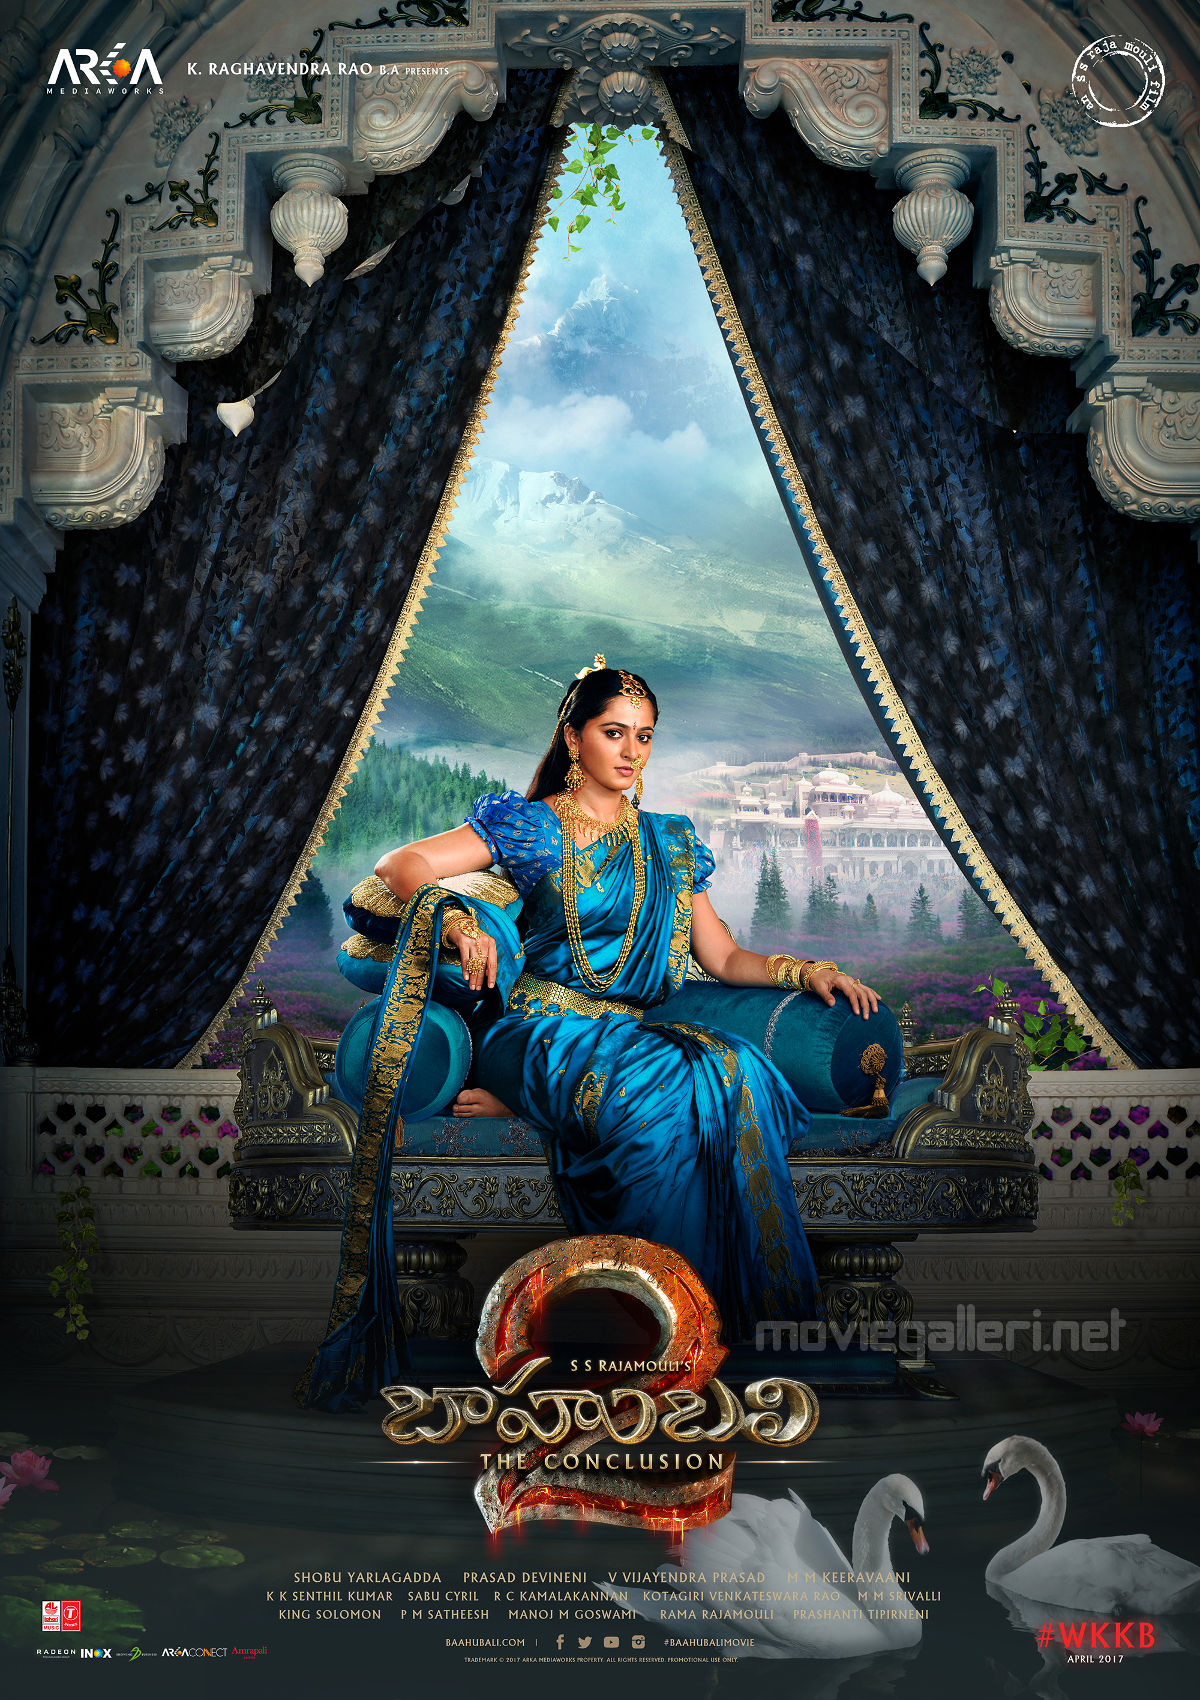 Actress Anushka Shetty in Baahubali 2 Movie Poster